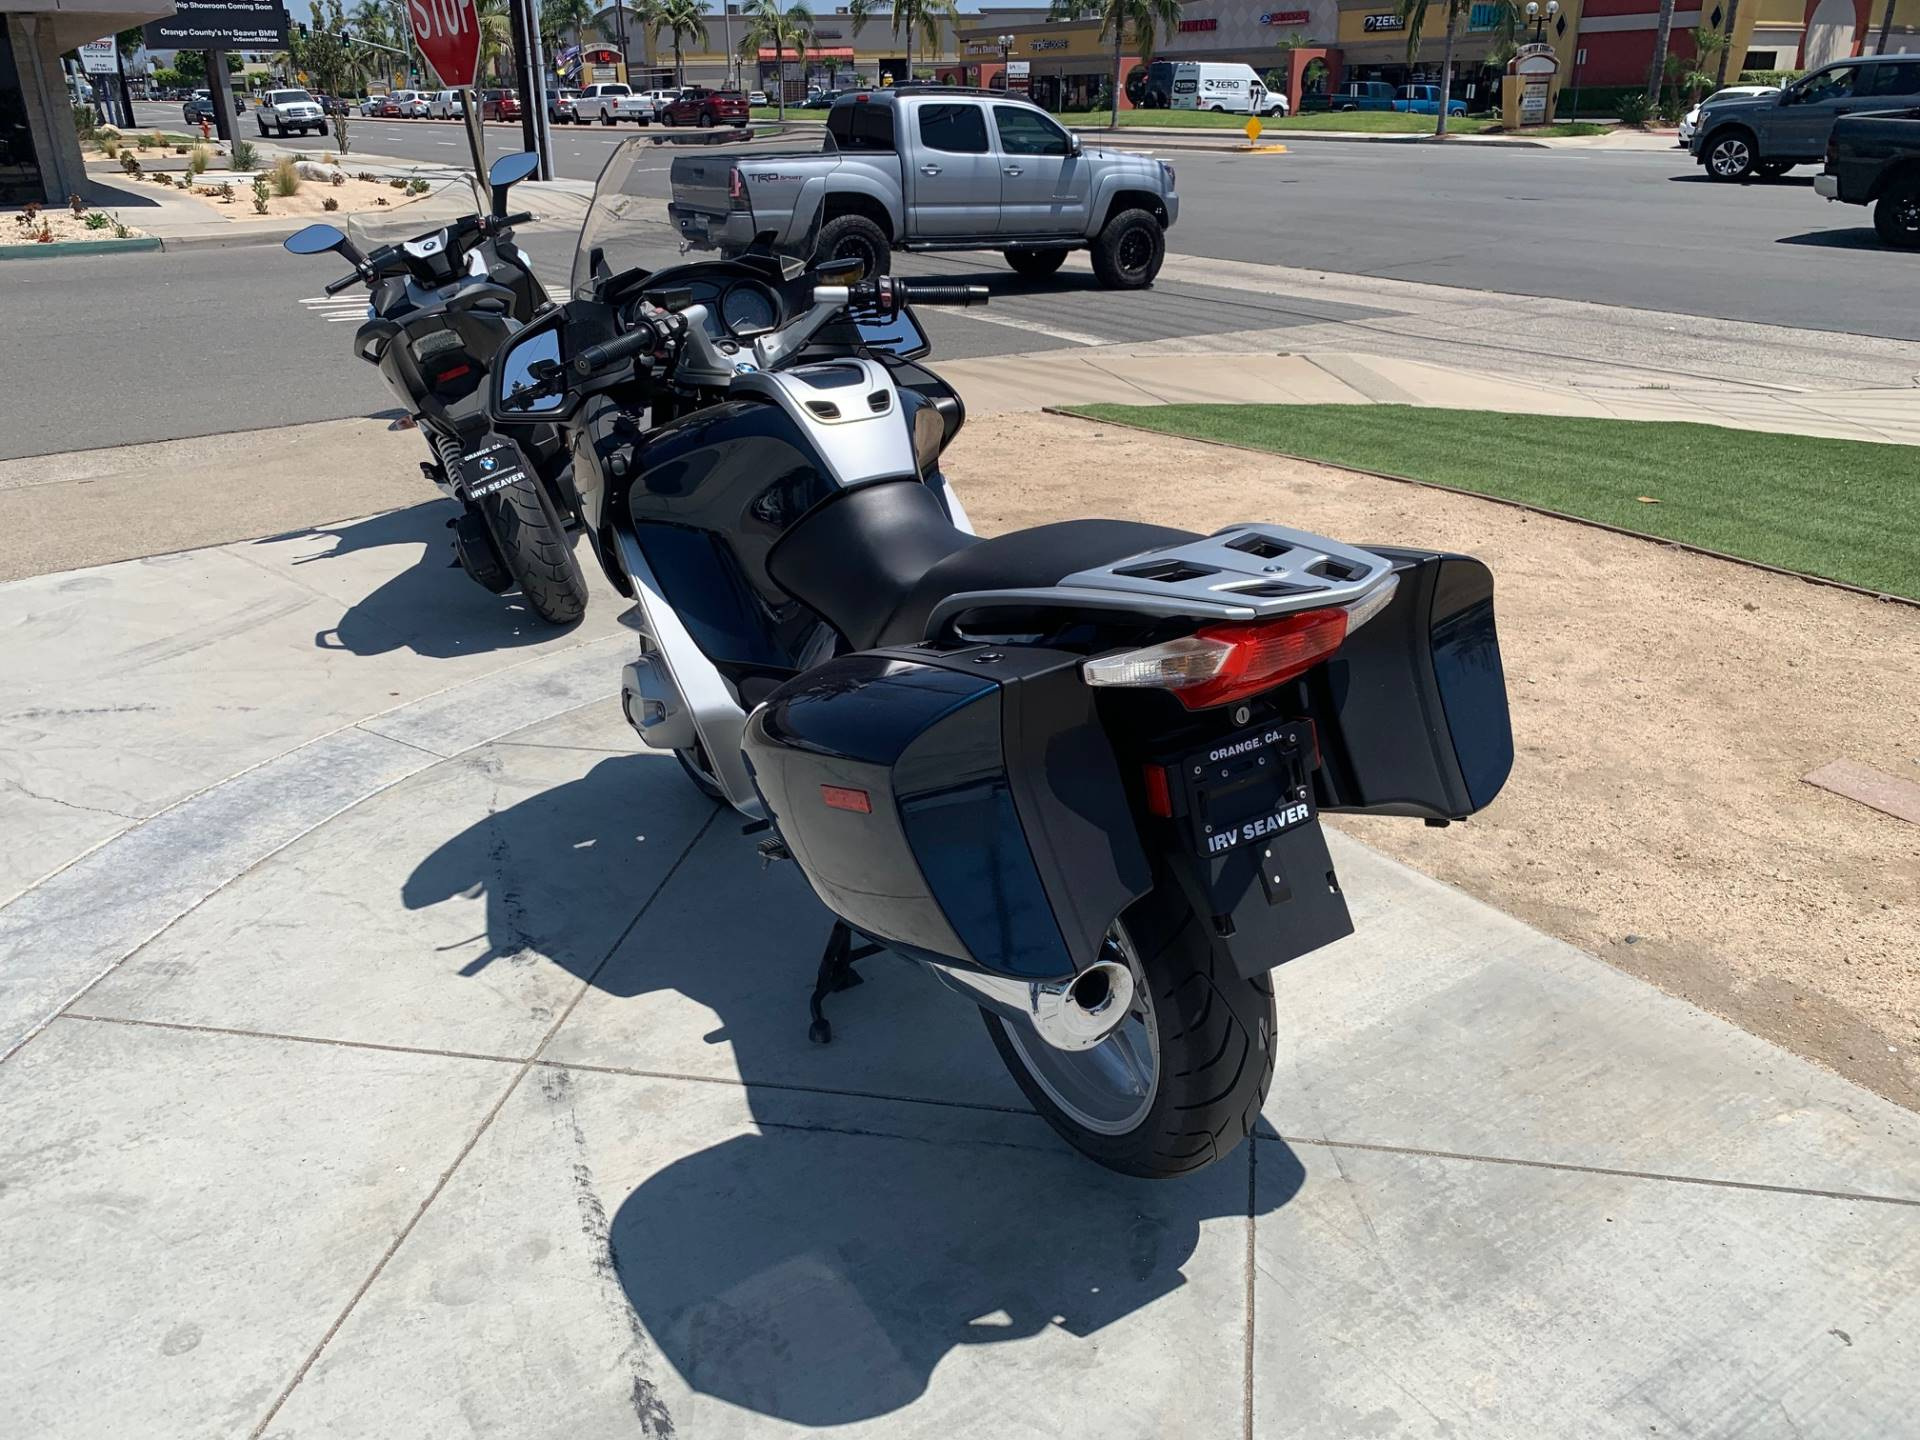 2013 BMW R 1200 RT in Orange, California - Photo 3